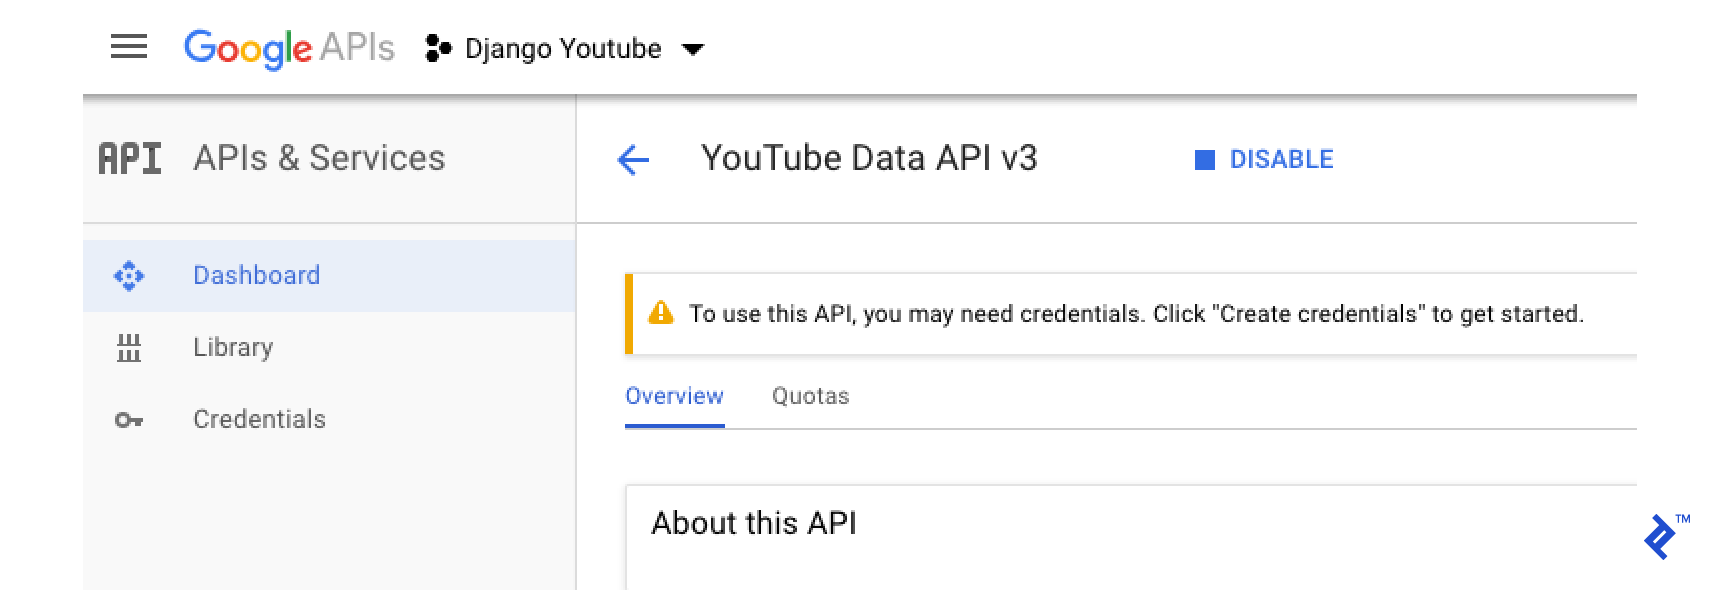 Youtube API Integration: Uploading Videos with Django | Toptal